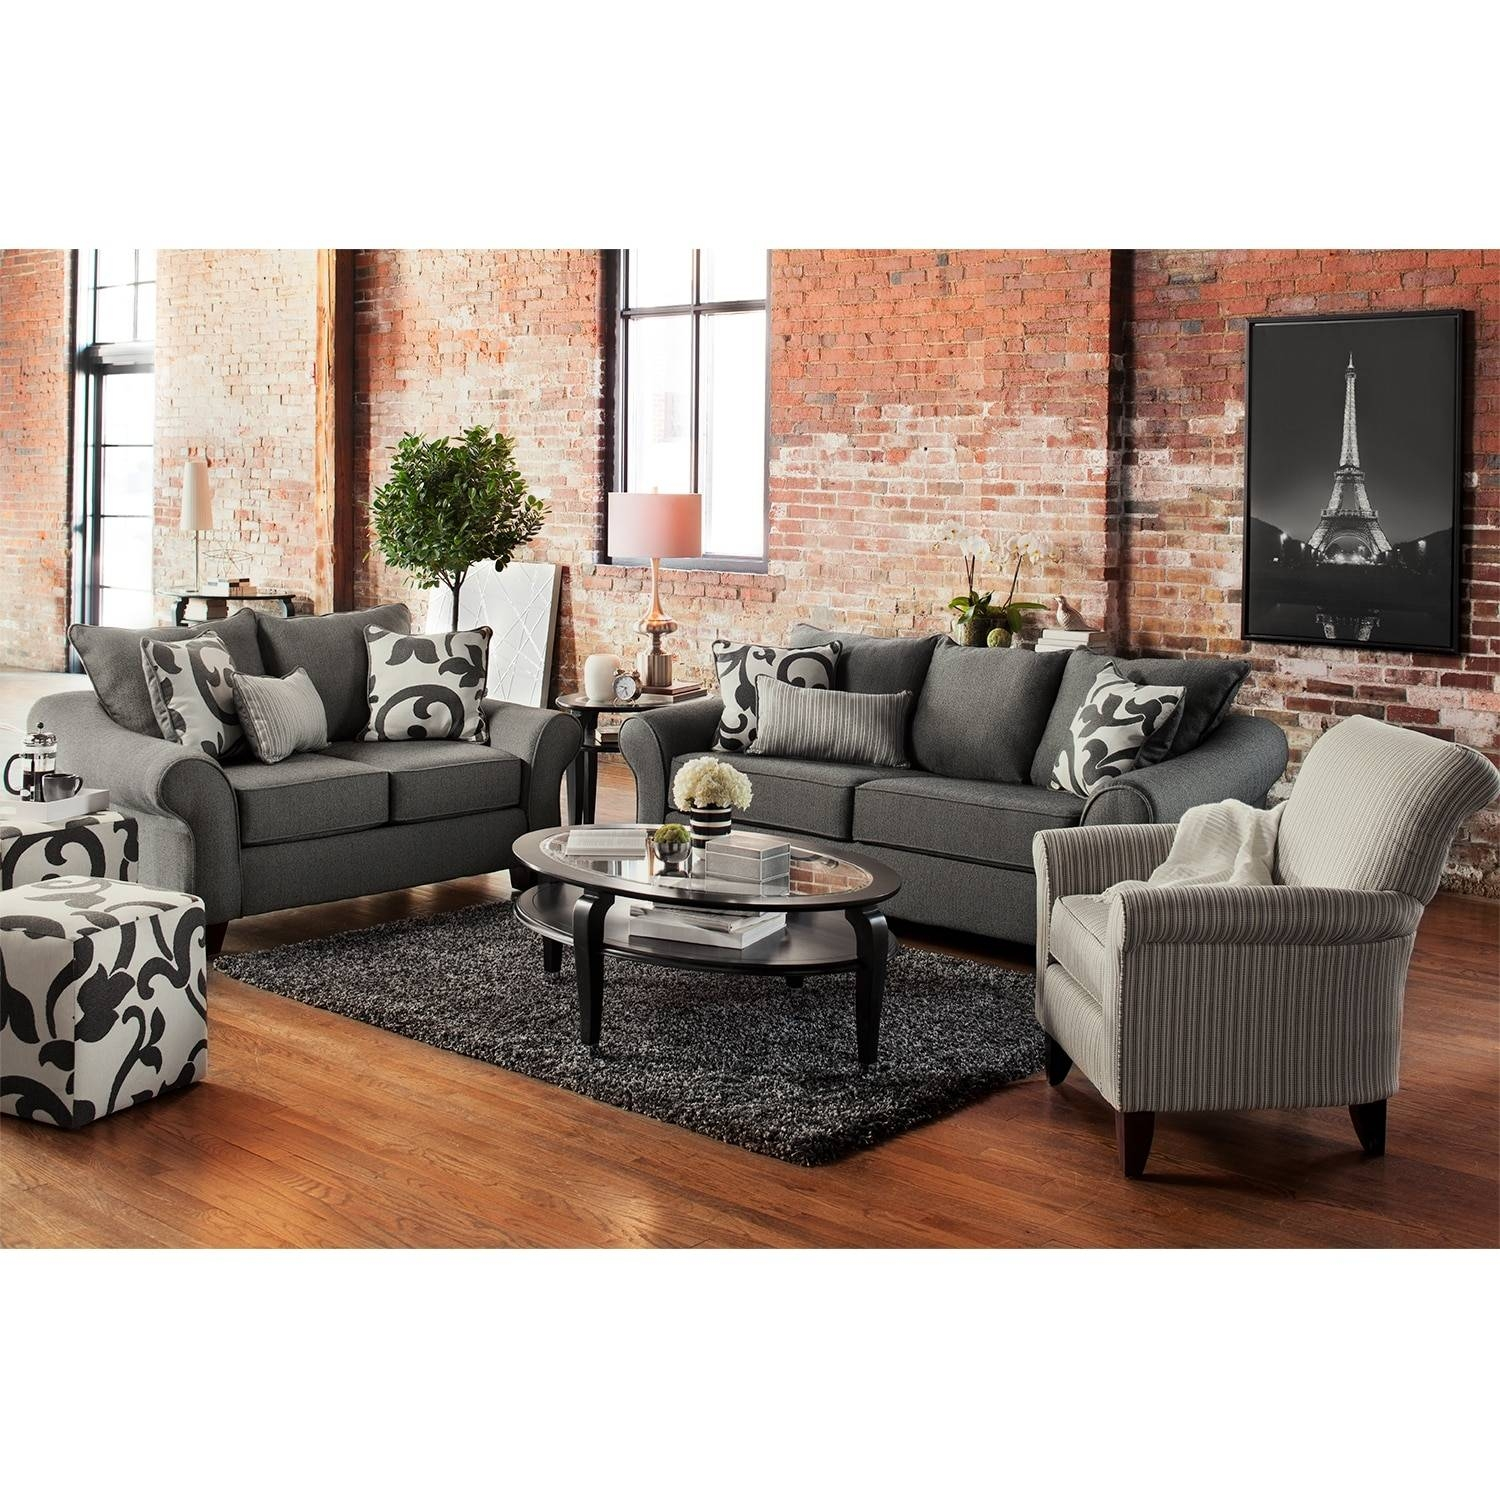 Colette Sofa And Accent Chair Set - Gray | Value City Furniture pertaining to Sofa And Accent Chair Set (Image 13 of 30)